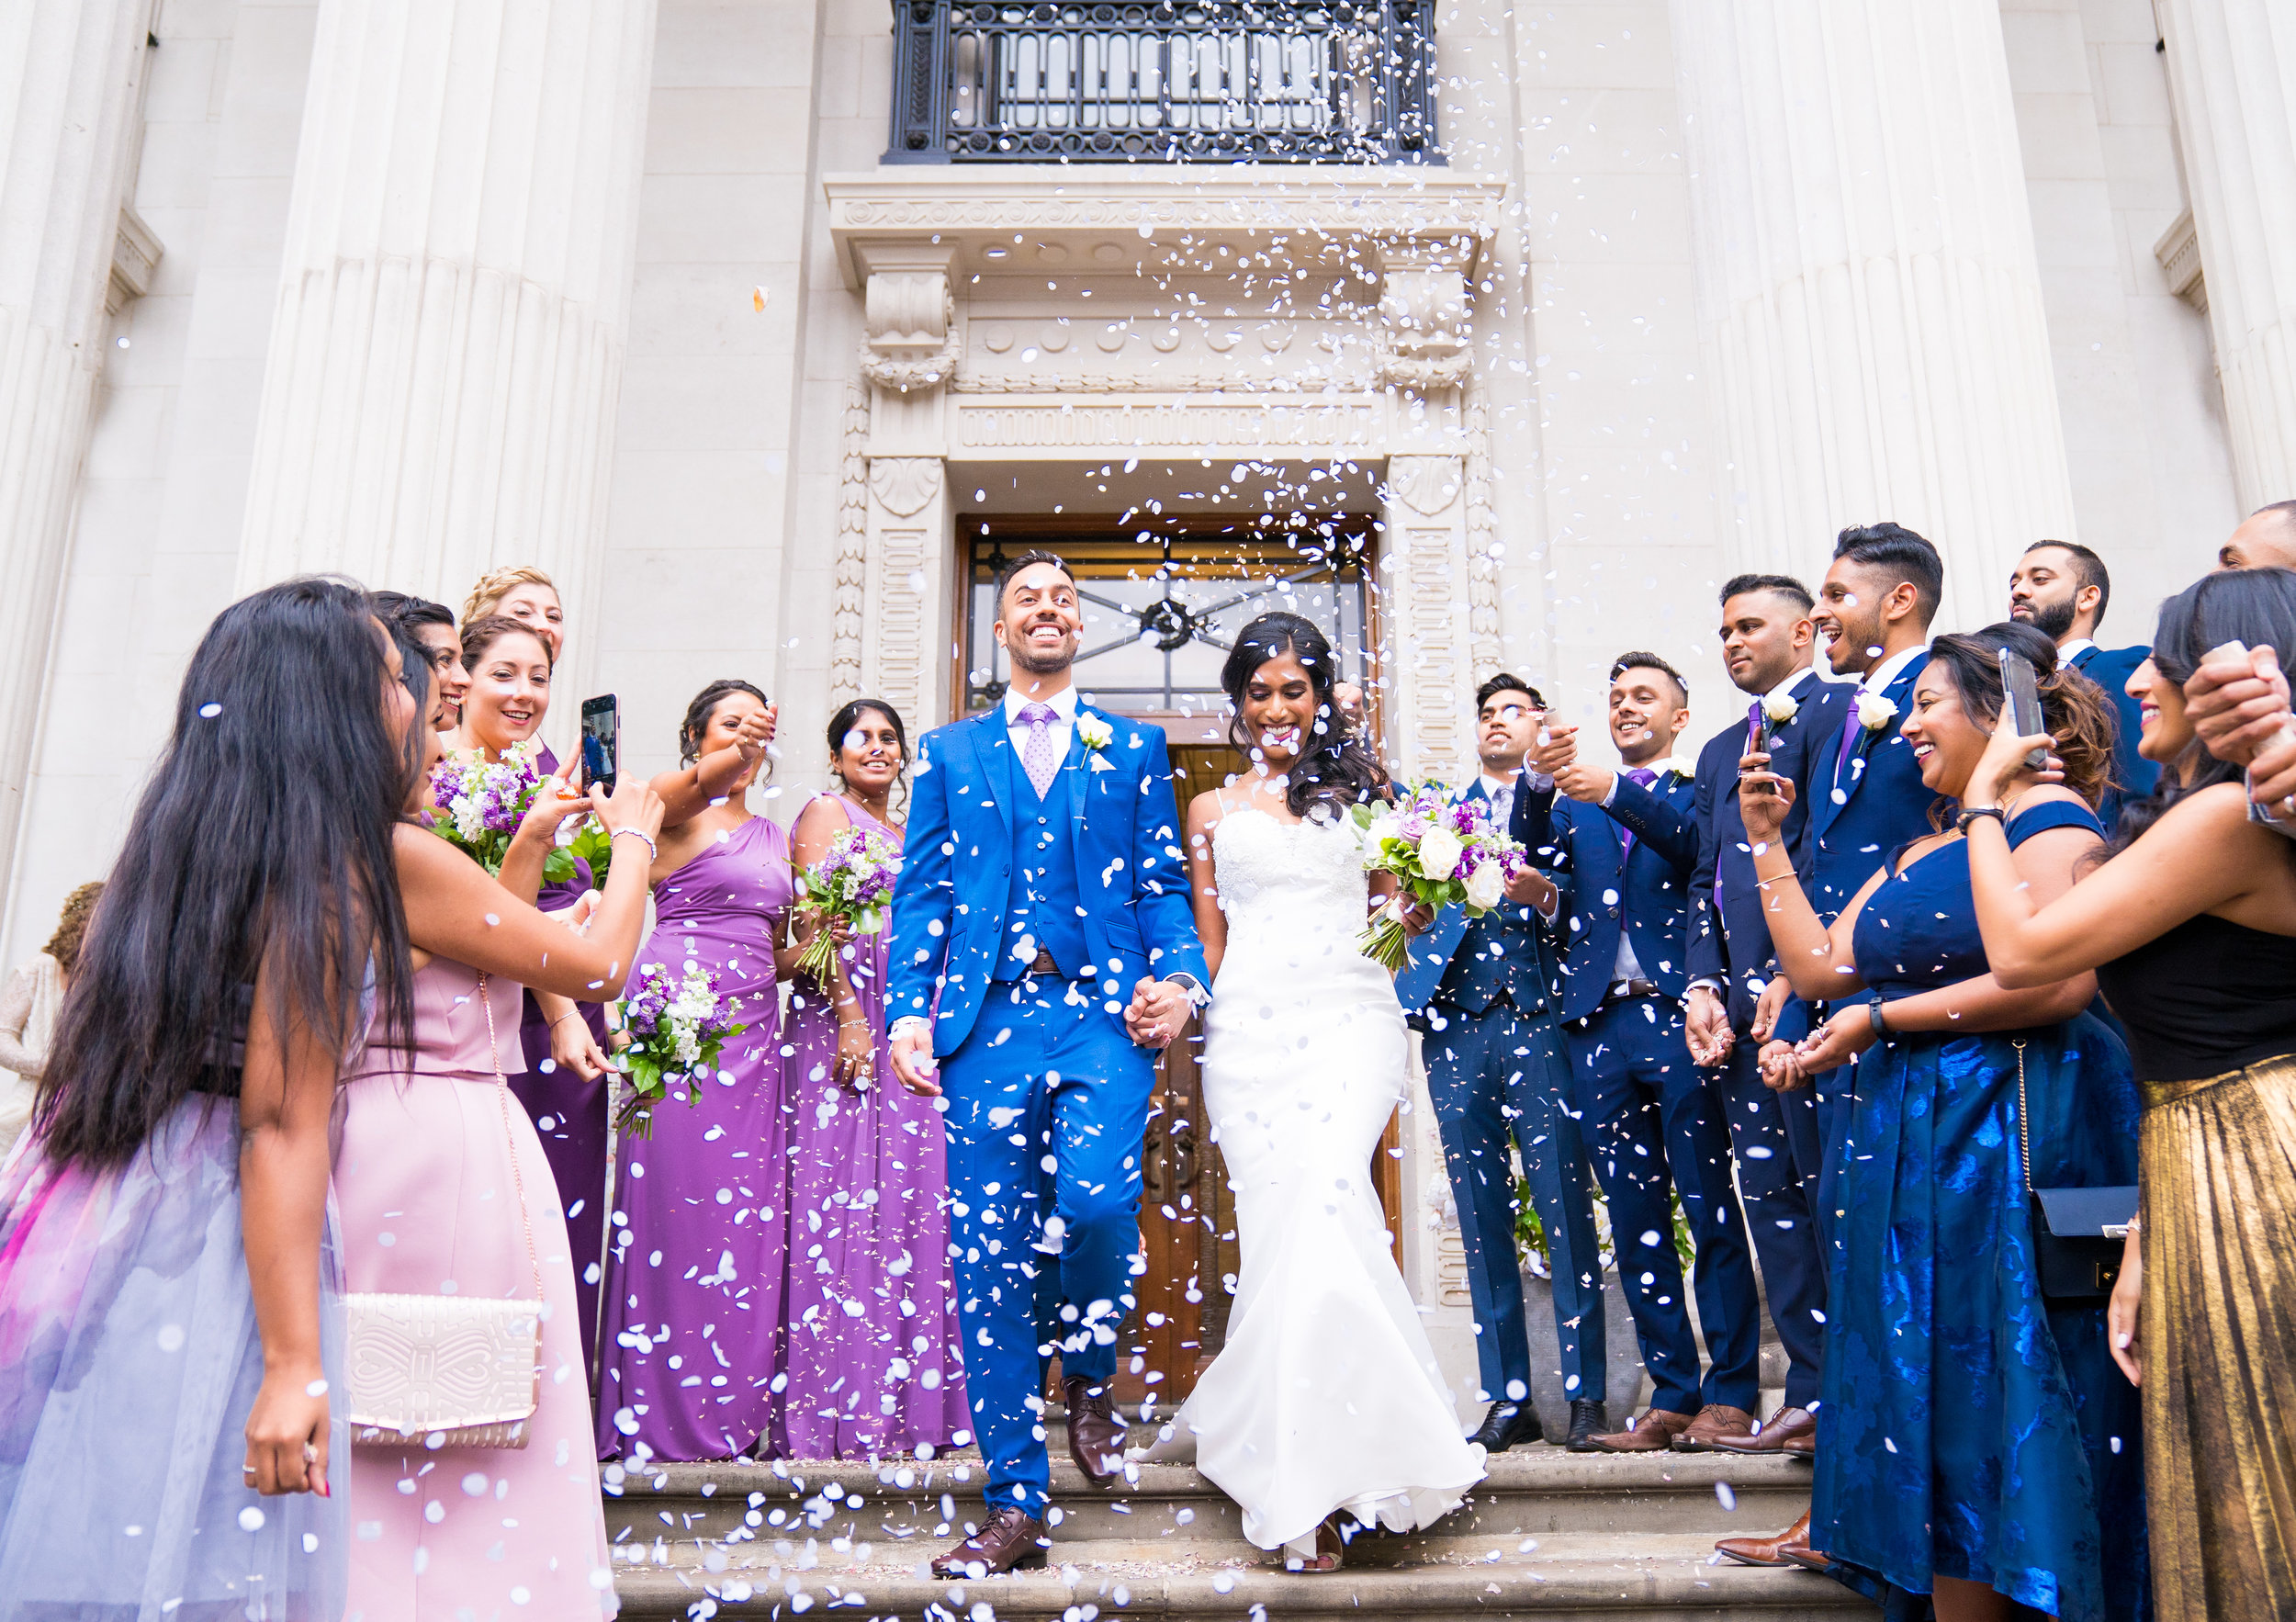 anglo-asian-hindu-civil-wedding-photography-videography-london-portrait-marylebone-old-town-hall-38